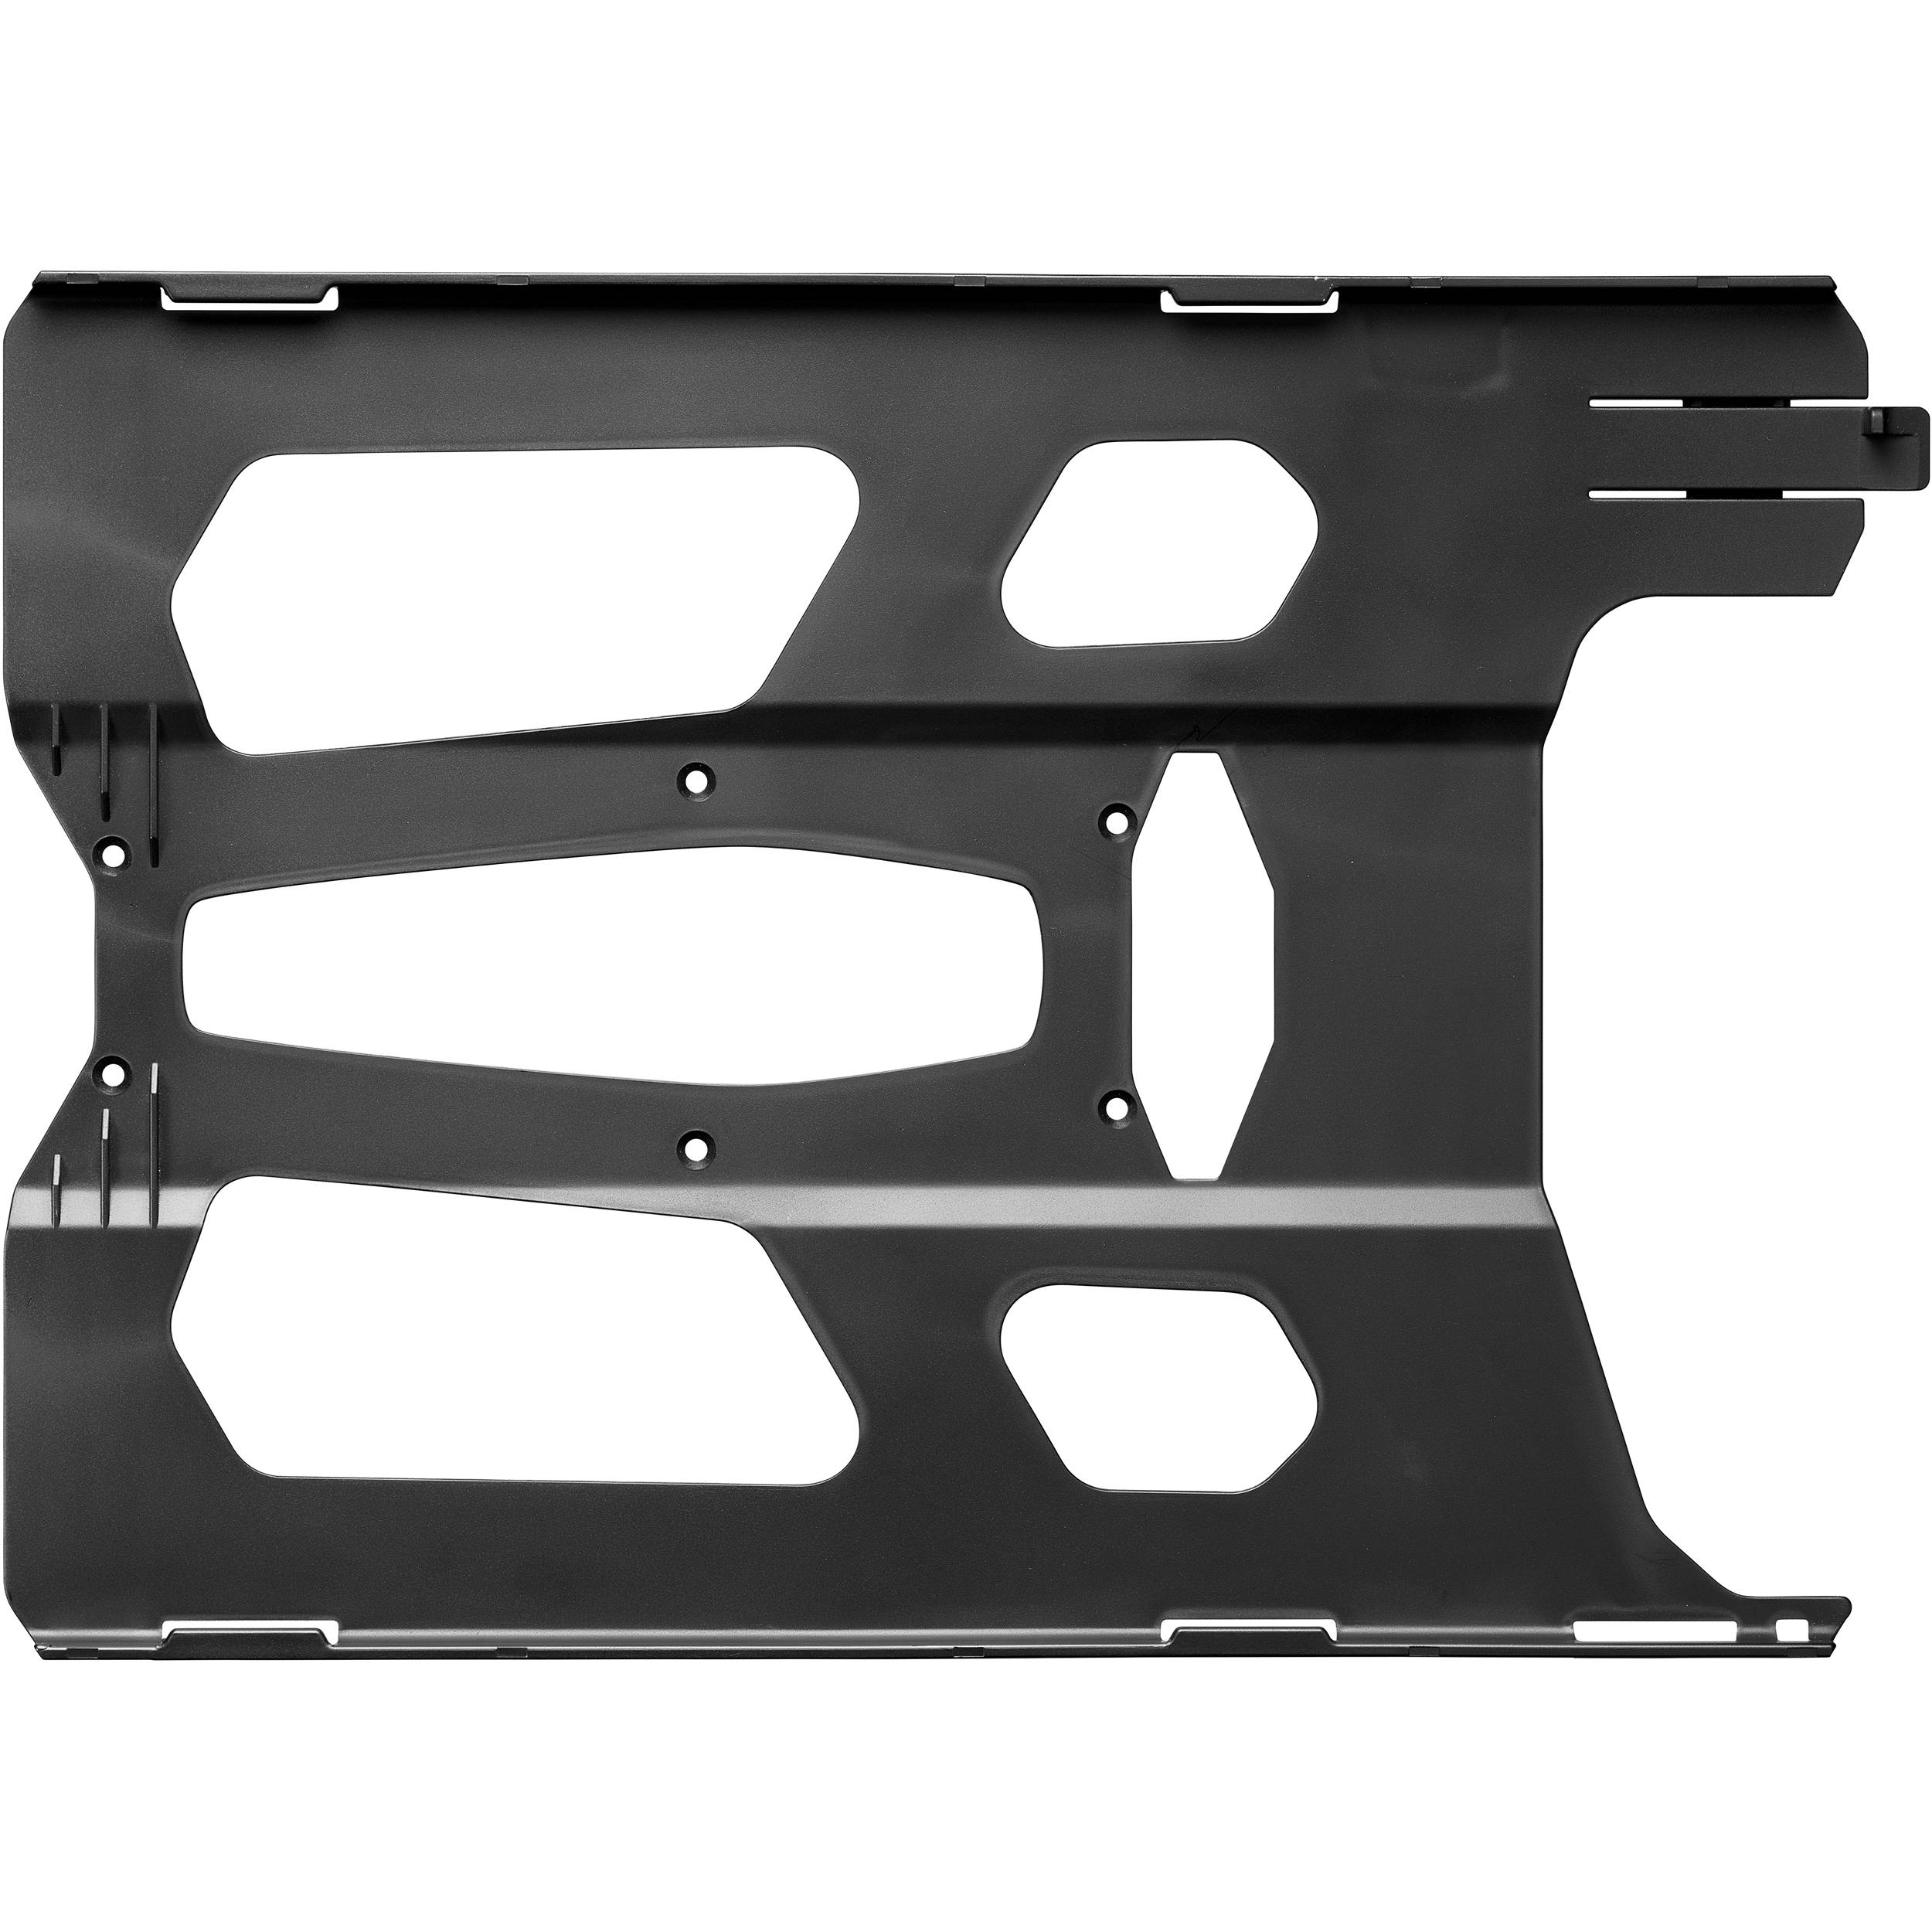 manfrotto digital director mounting frame for ipad pro 129